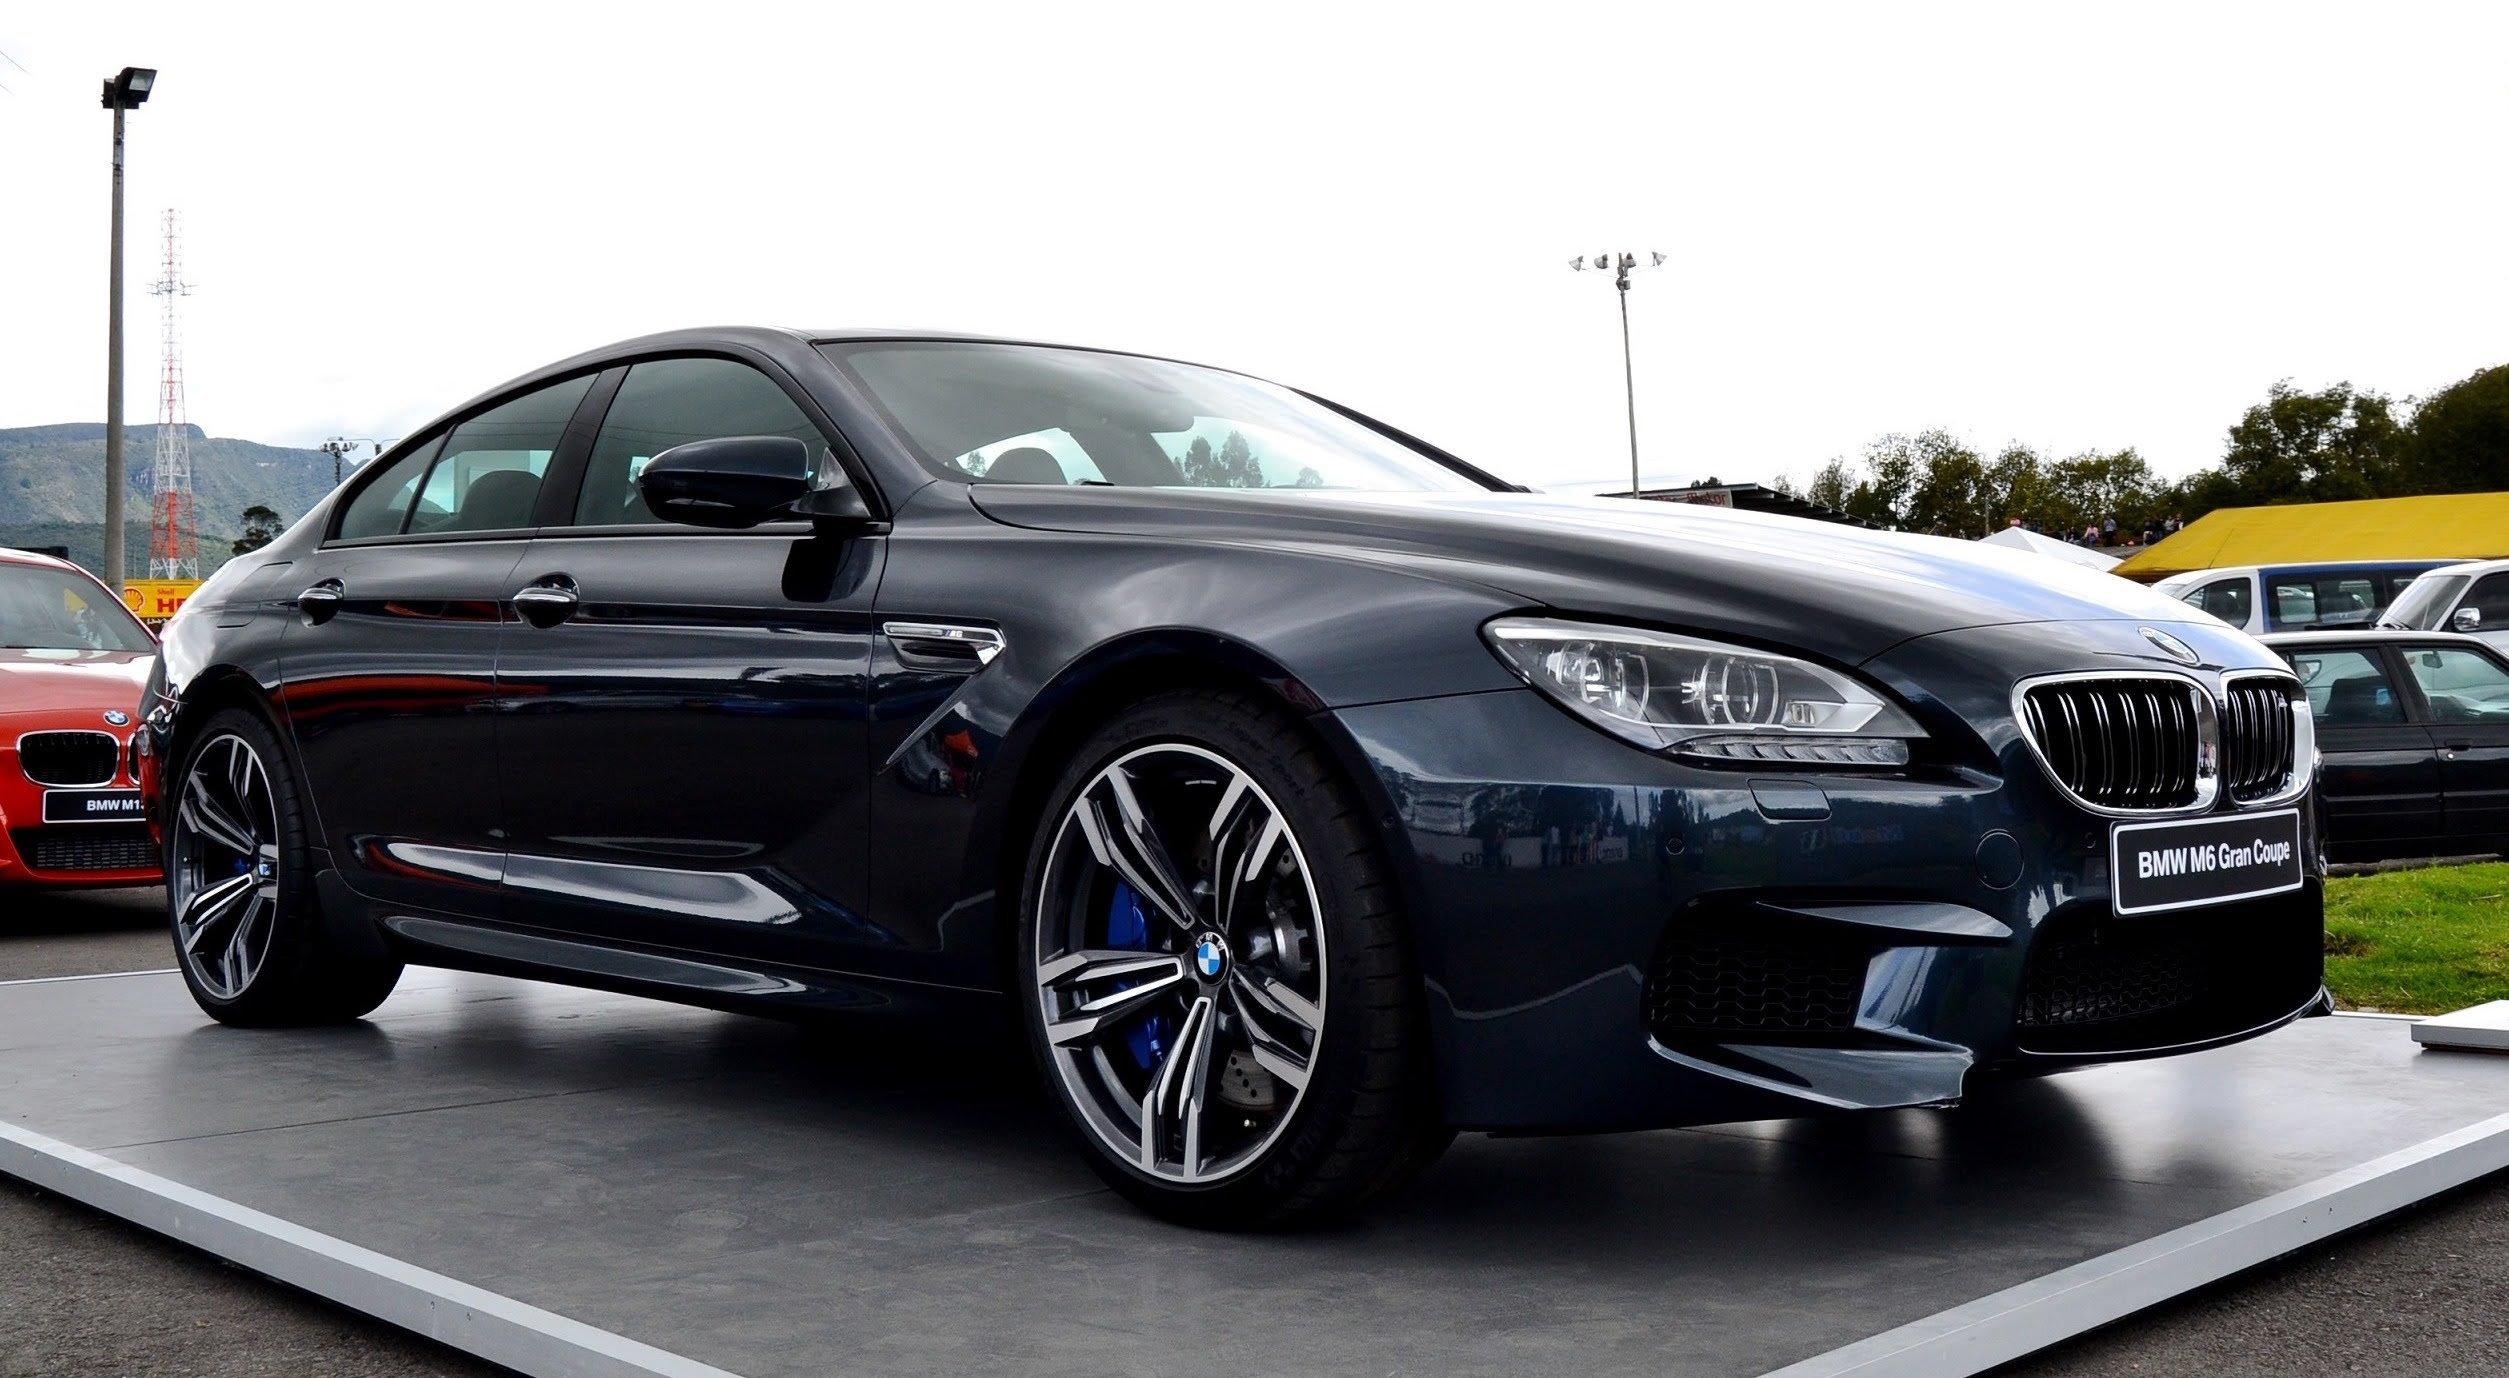 2016 Bmw M6 Gran Coupe #13